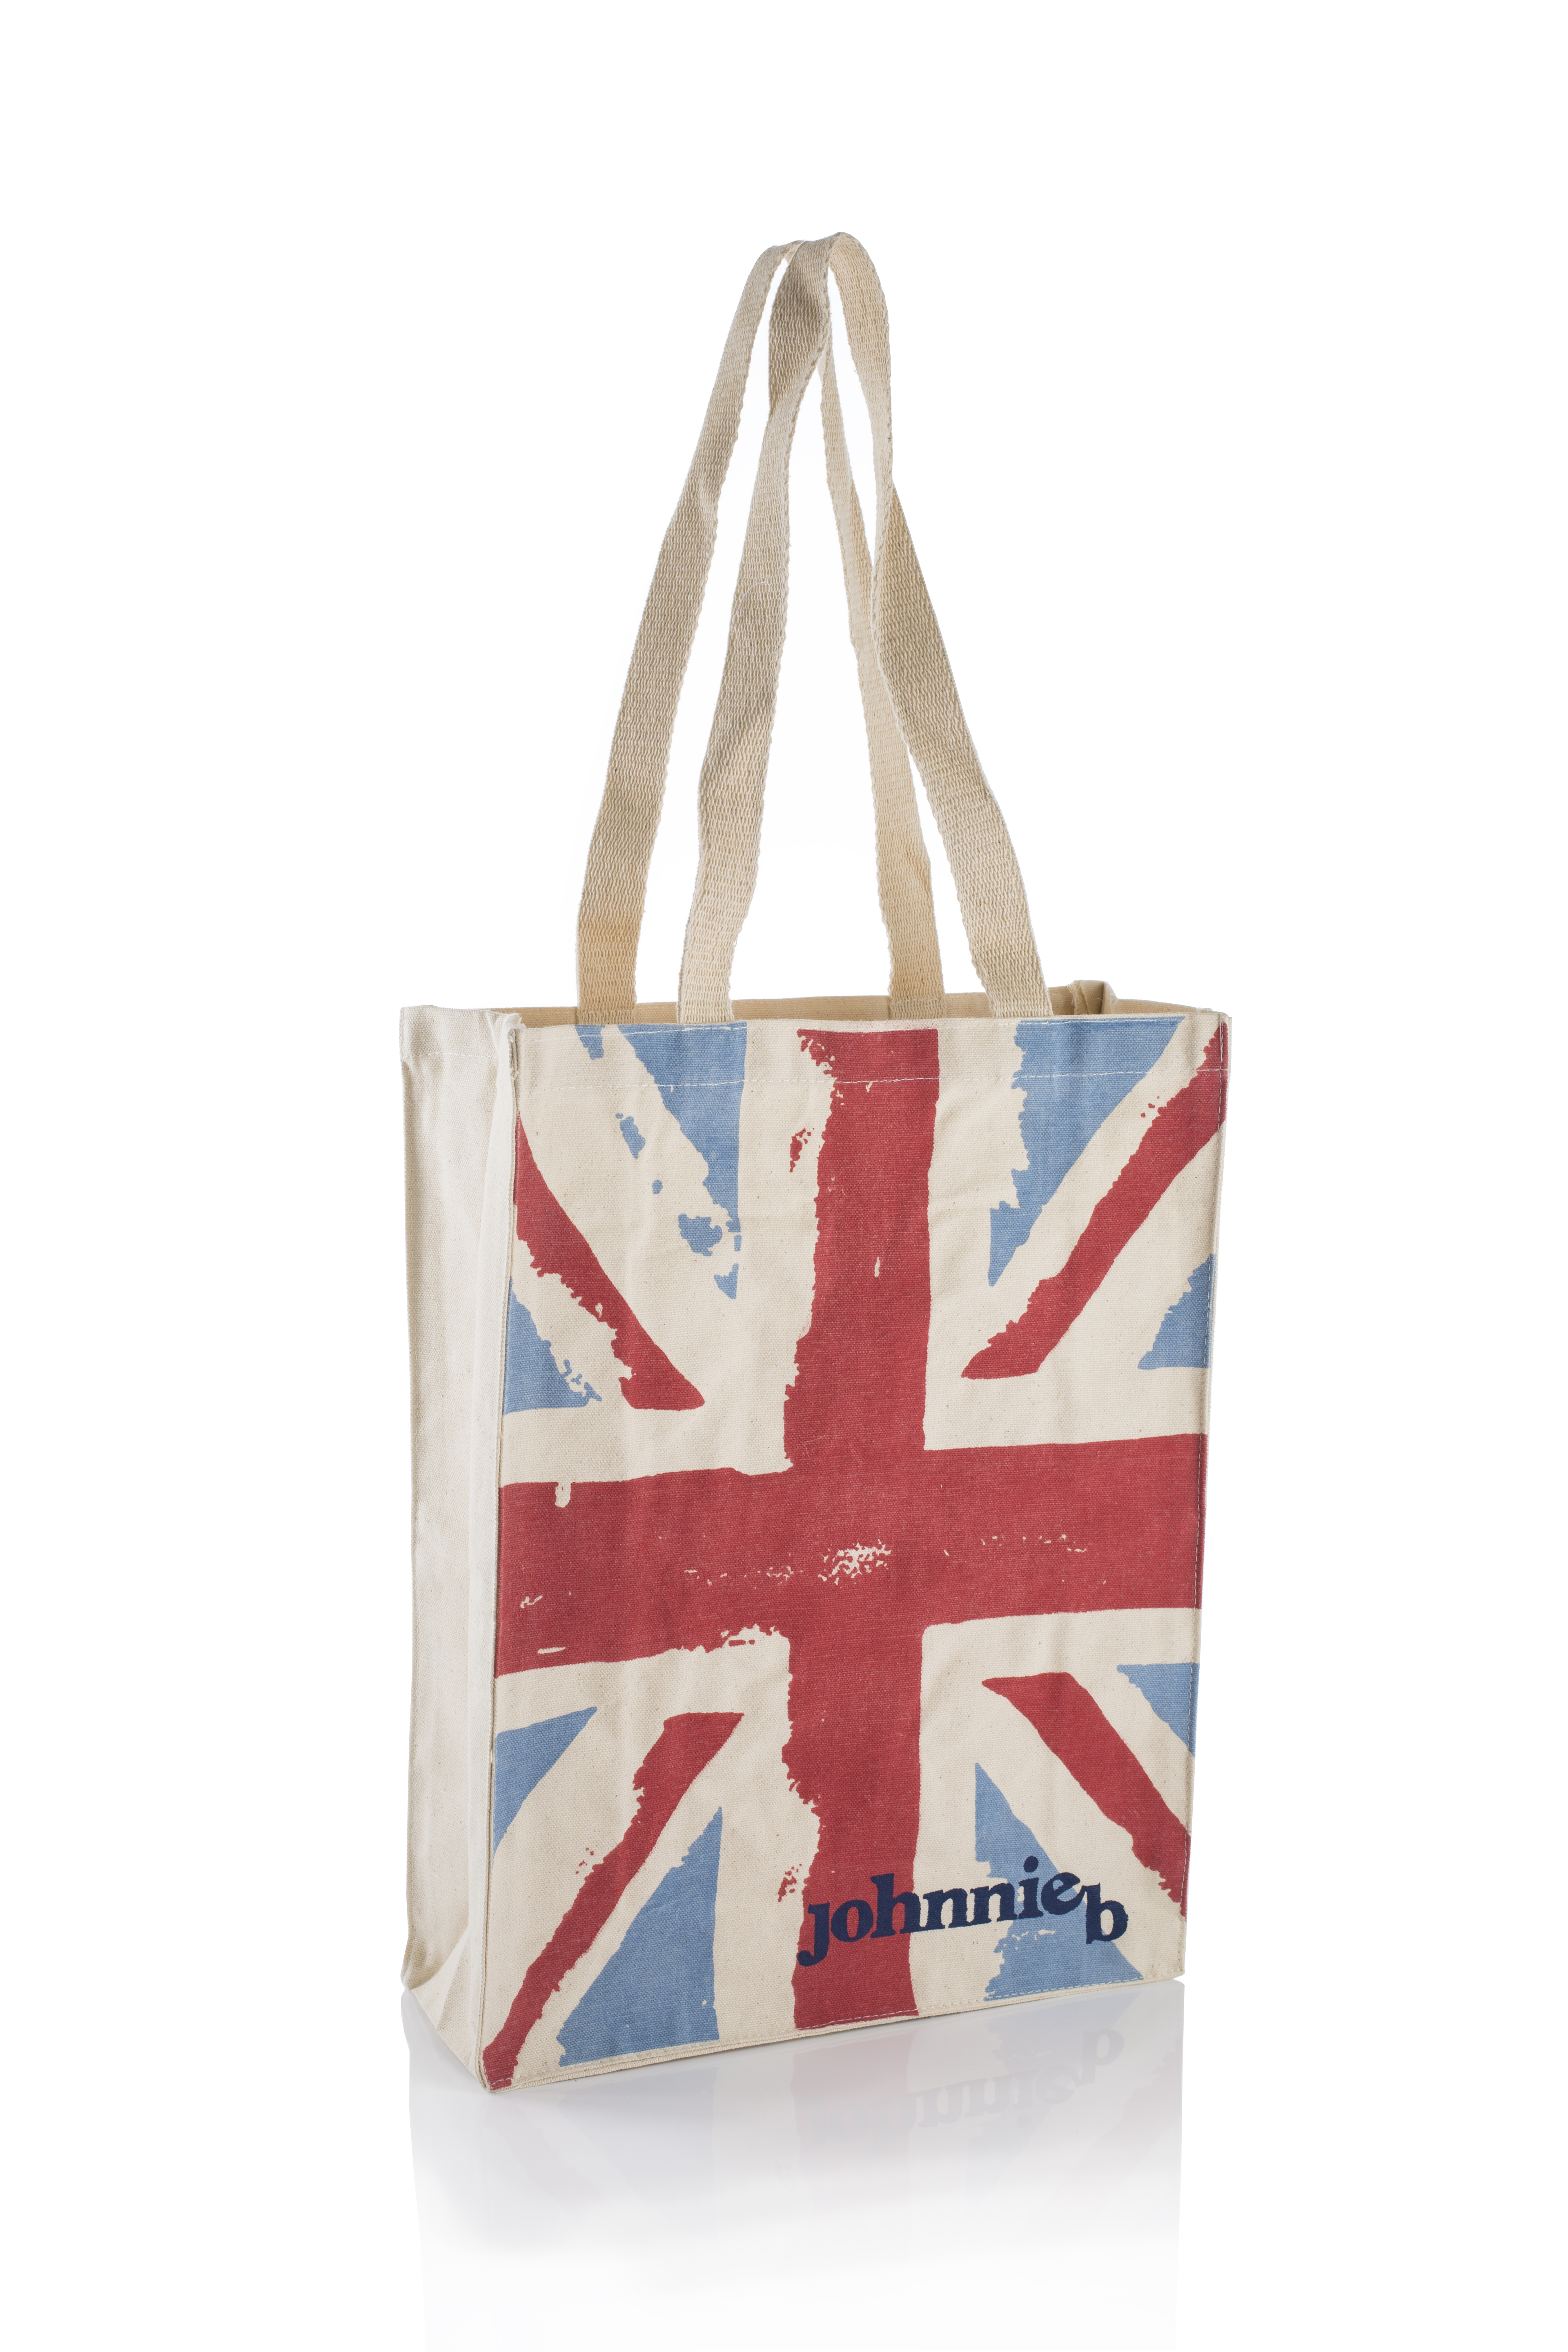 Bespoke Johnnie b shopping bag